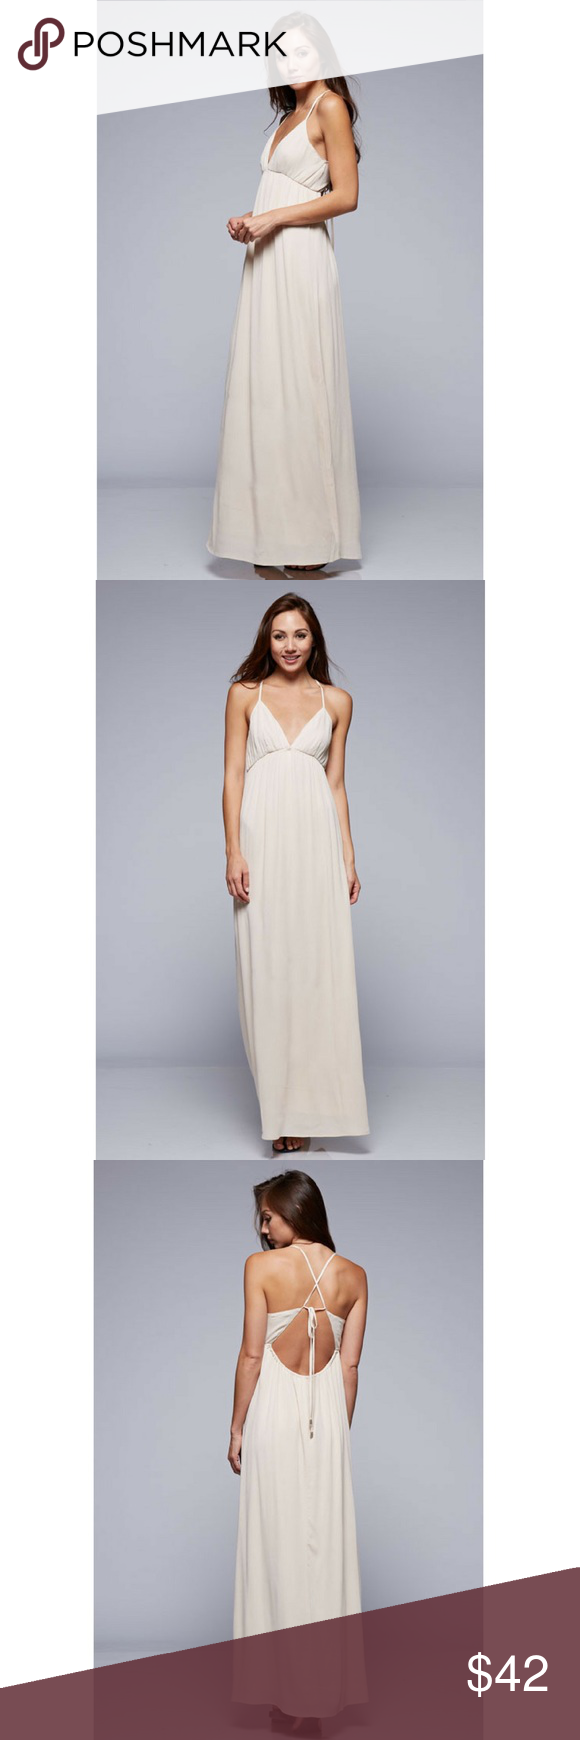 Strappy Backless Maxi Dress Fun and flirty moroccan style maxi with a sexy detailed strappy tie back.  Color - Cream Love Stitch Dresses Maxi